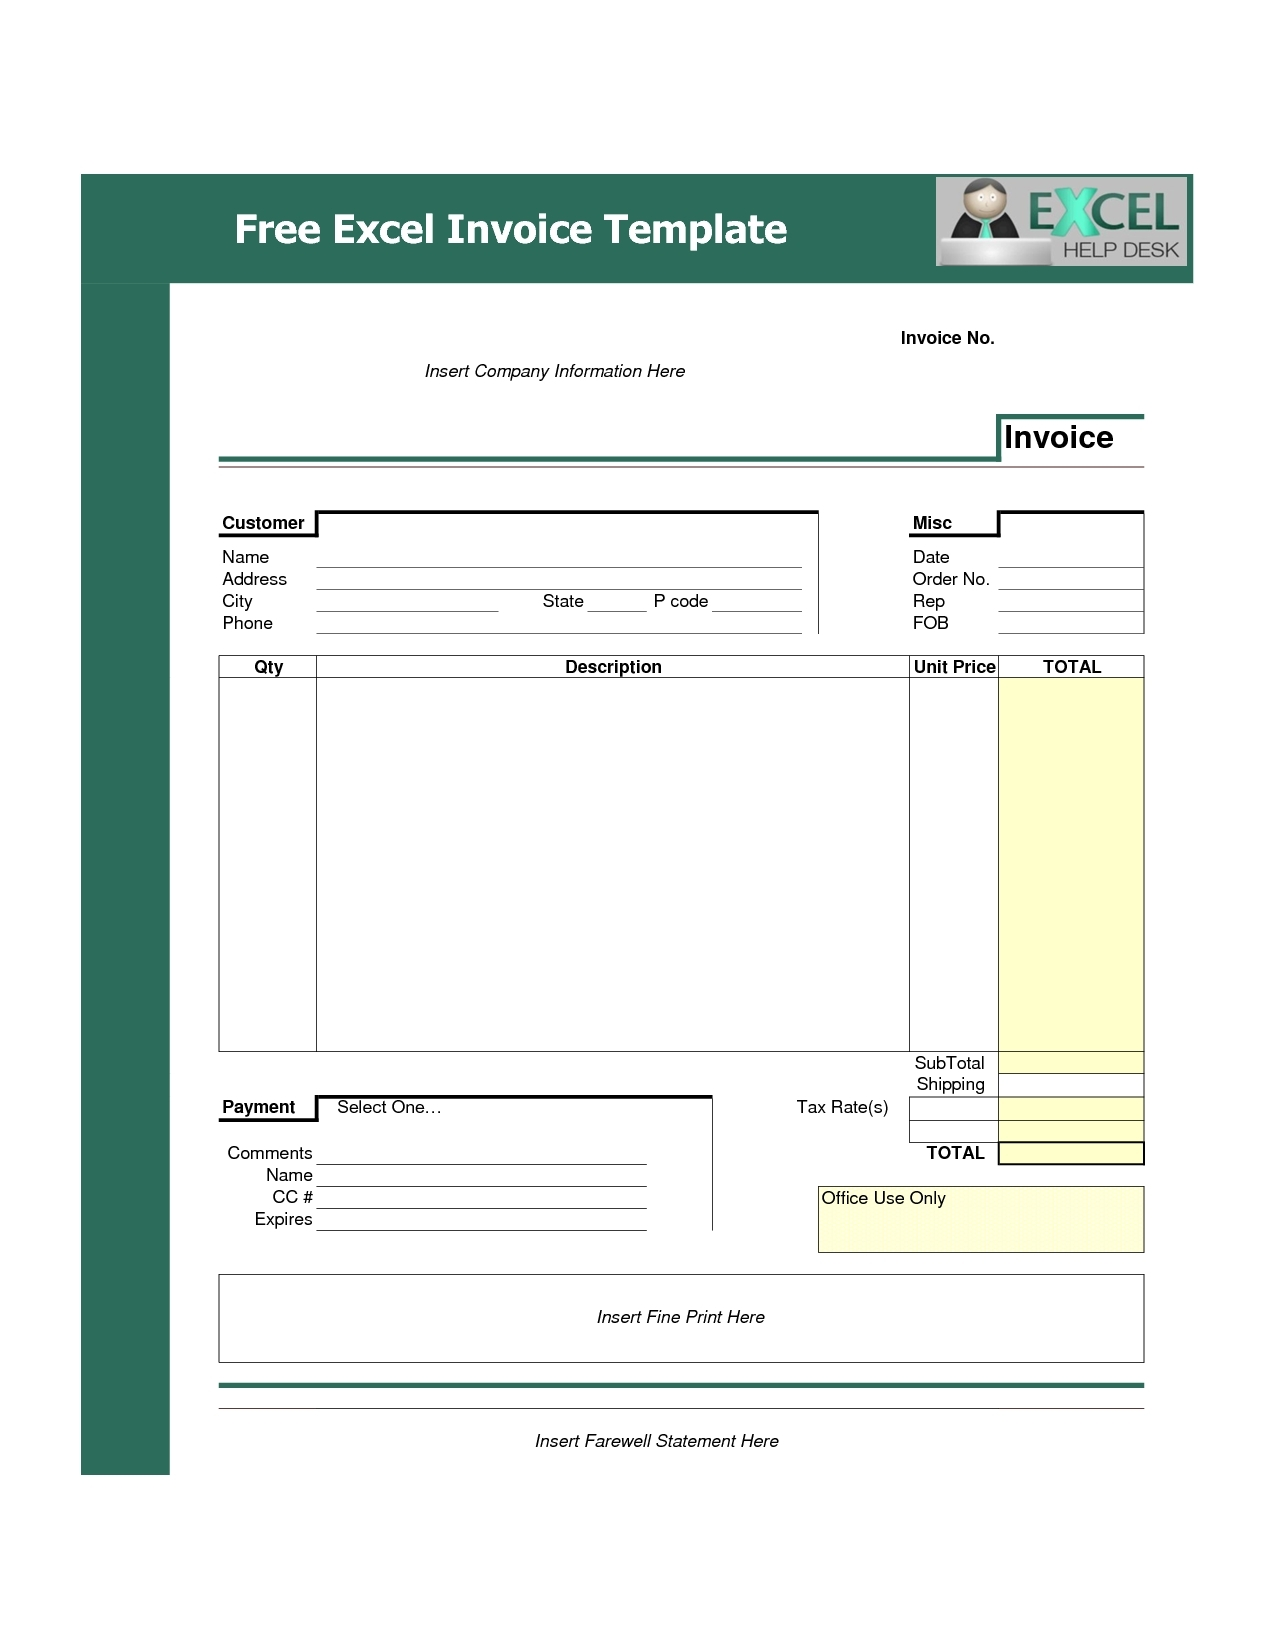 free download tax invoice format in excel invoice template free 2016 tax invoice format in excel free download